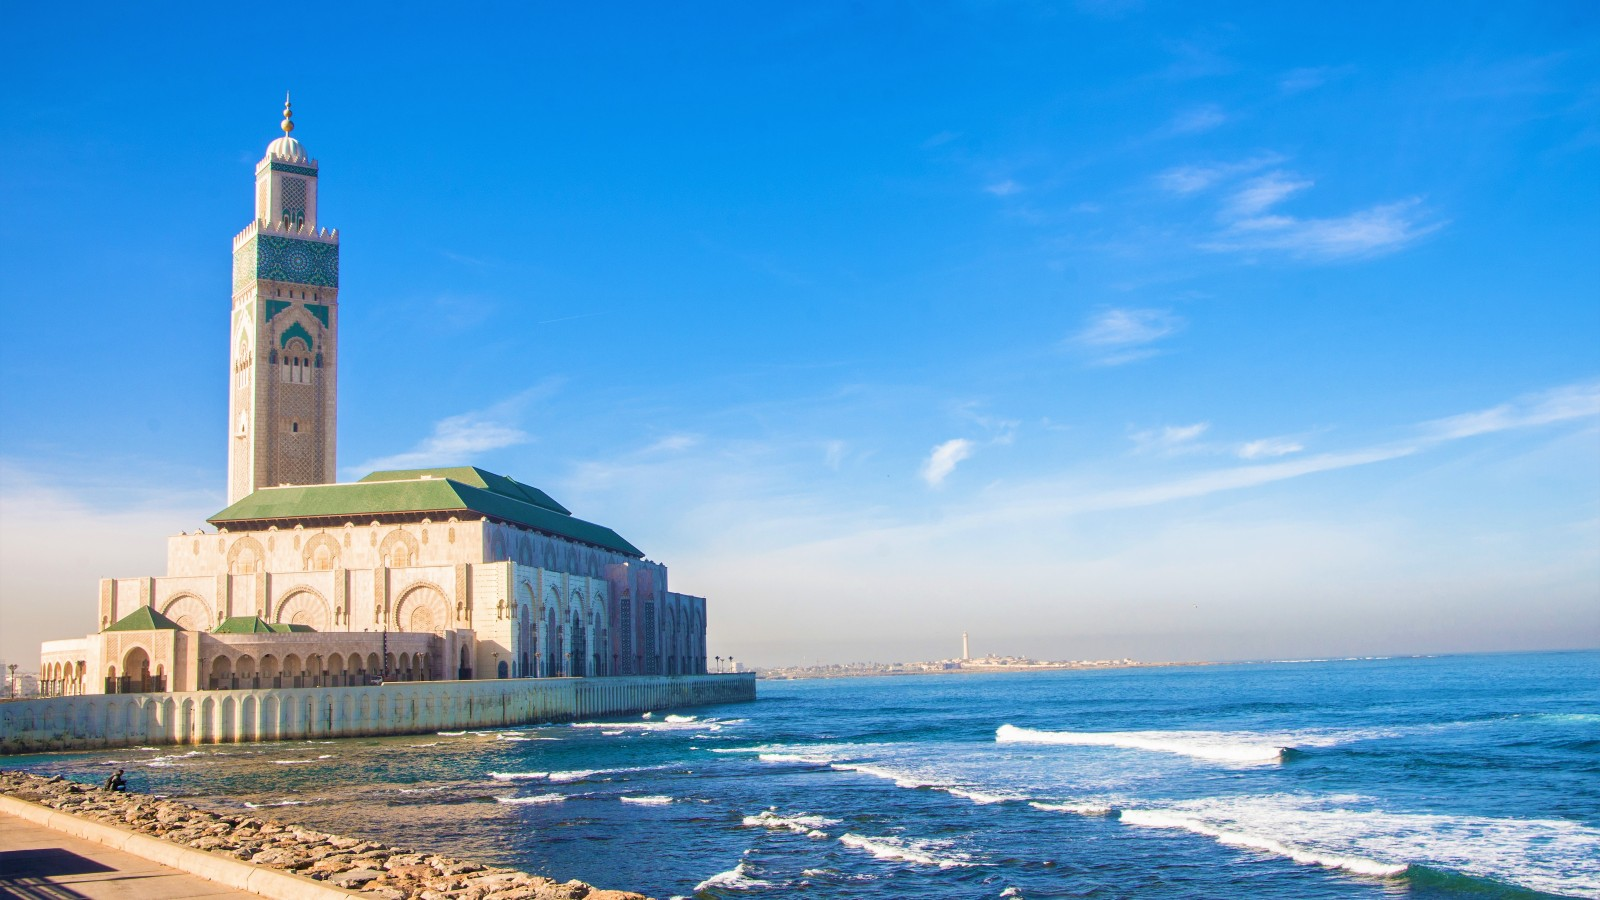 The rande Mosquée Hassan II is the largest mosque in Morocco and the fifth largest in the world